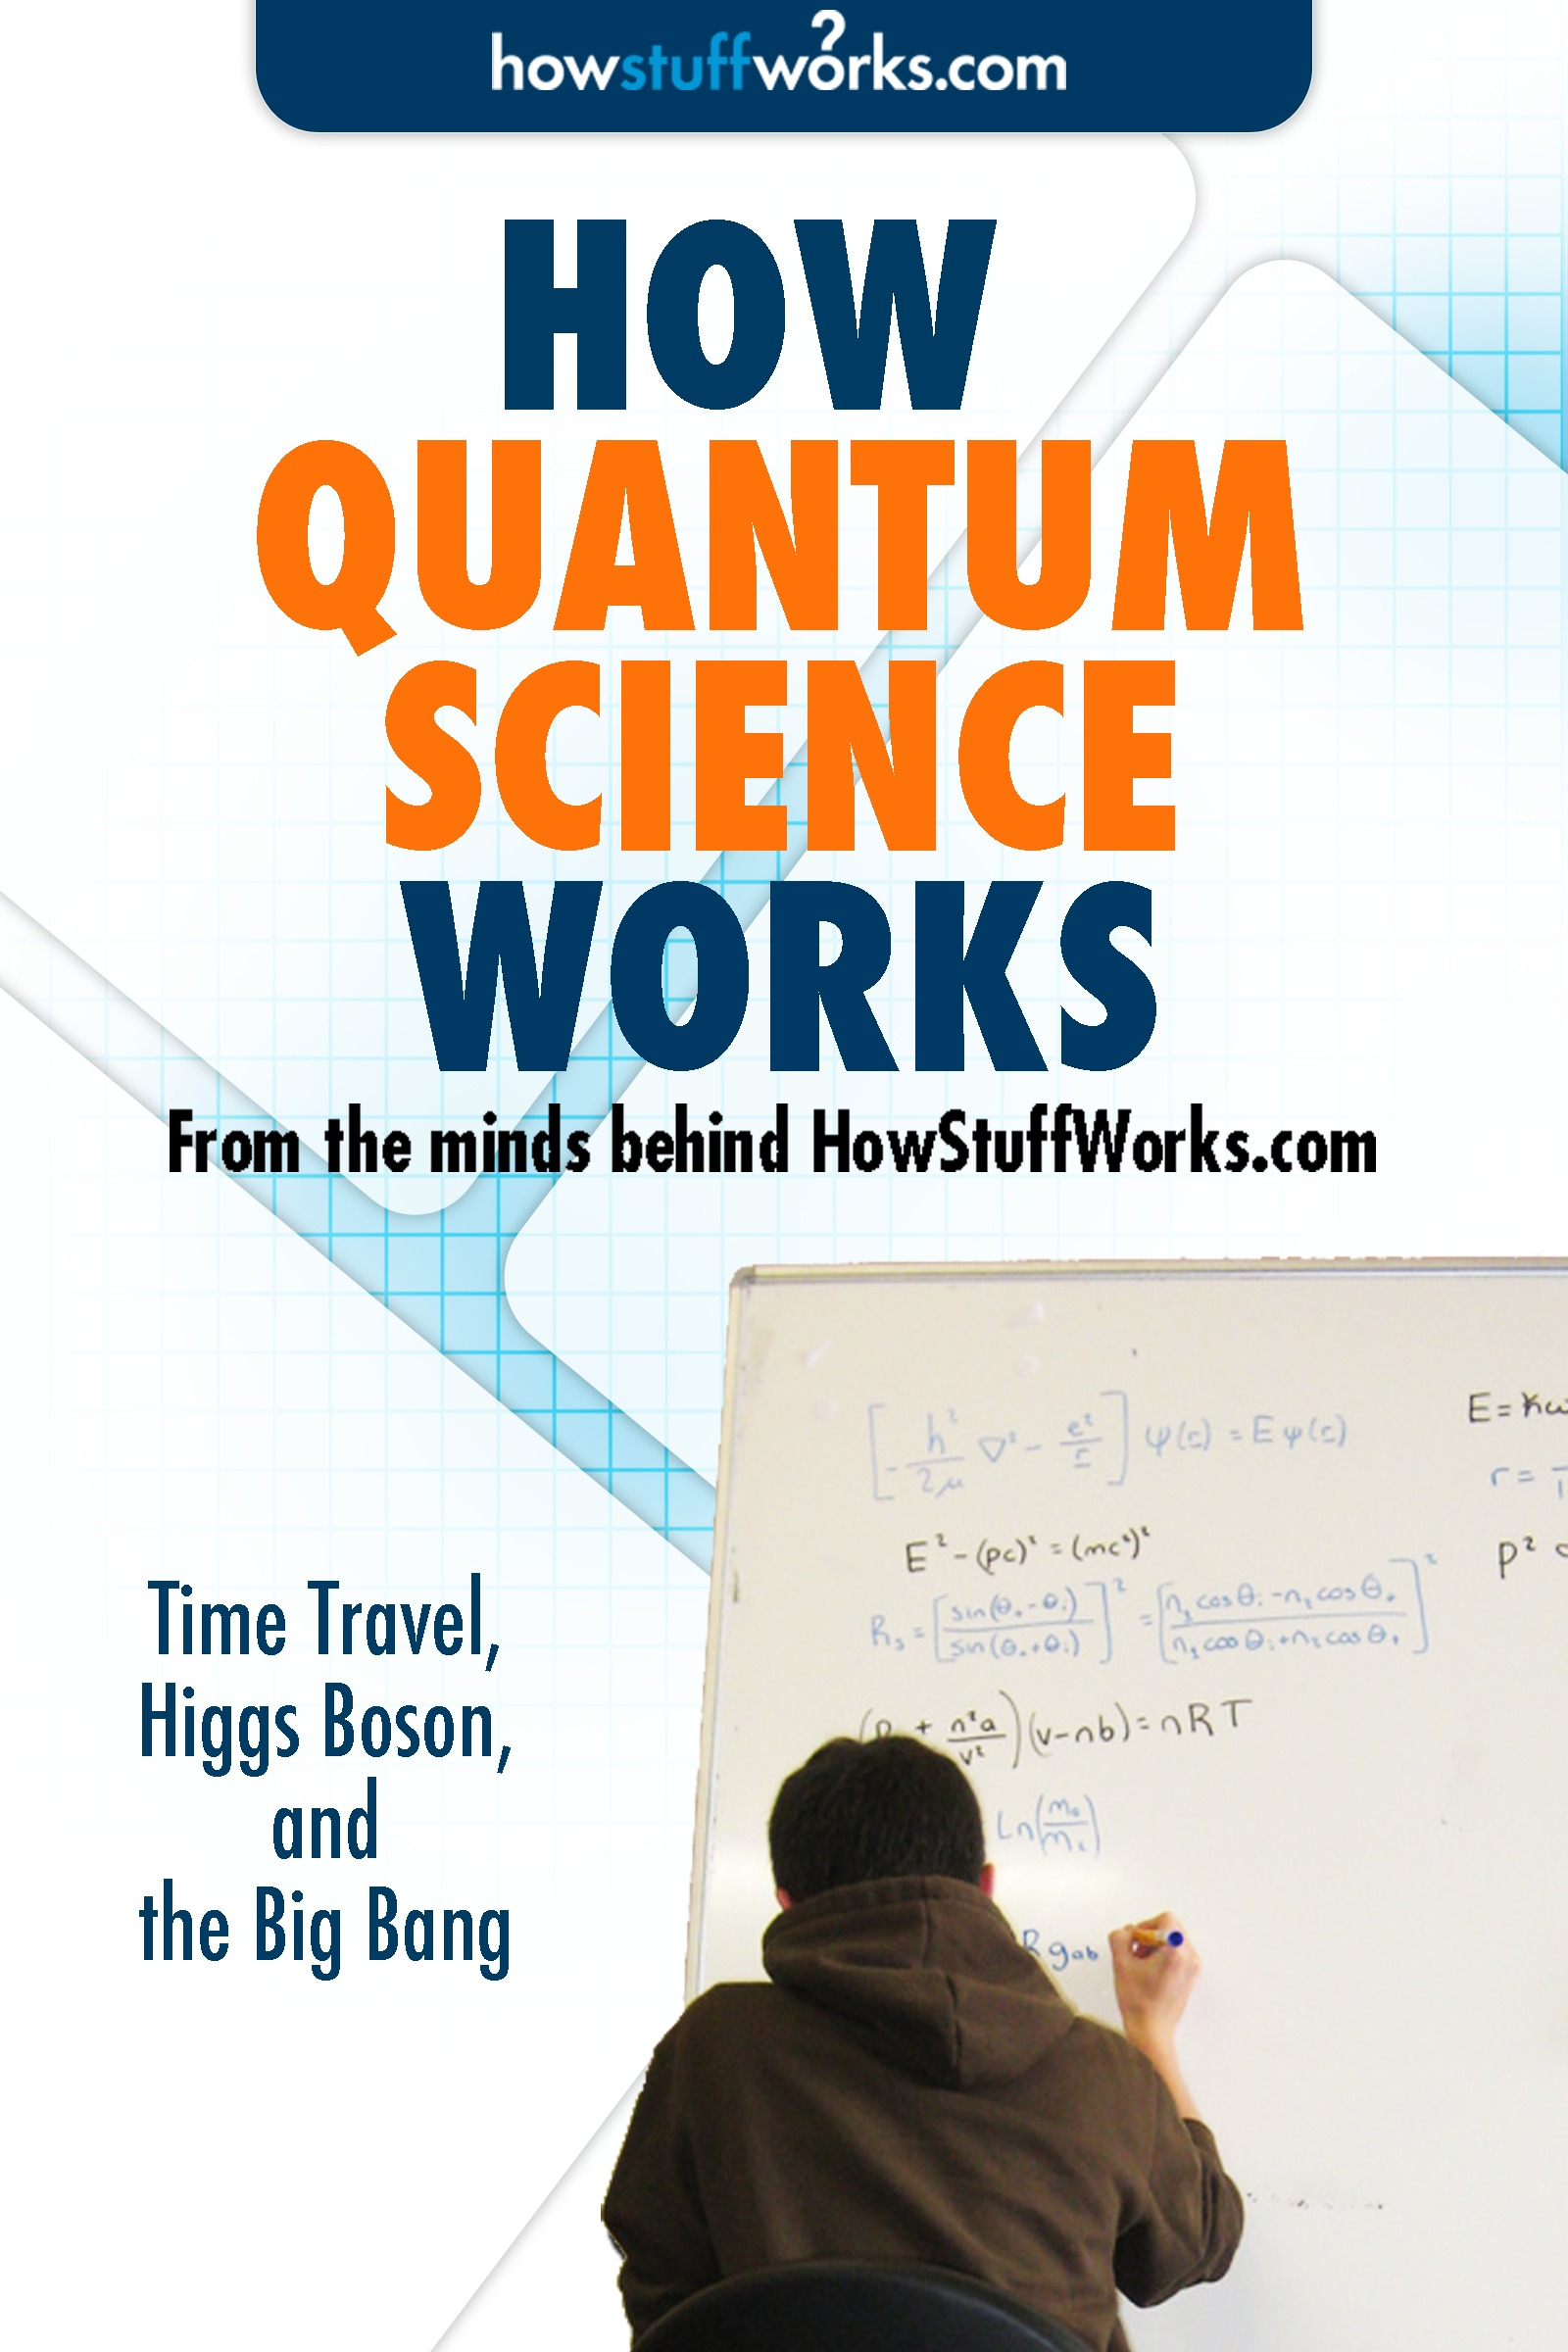 How Quantum Science Works: Time Travel, Higgs Boson, and the Big Bang By: HowStuffWorks.com